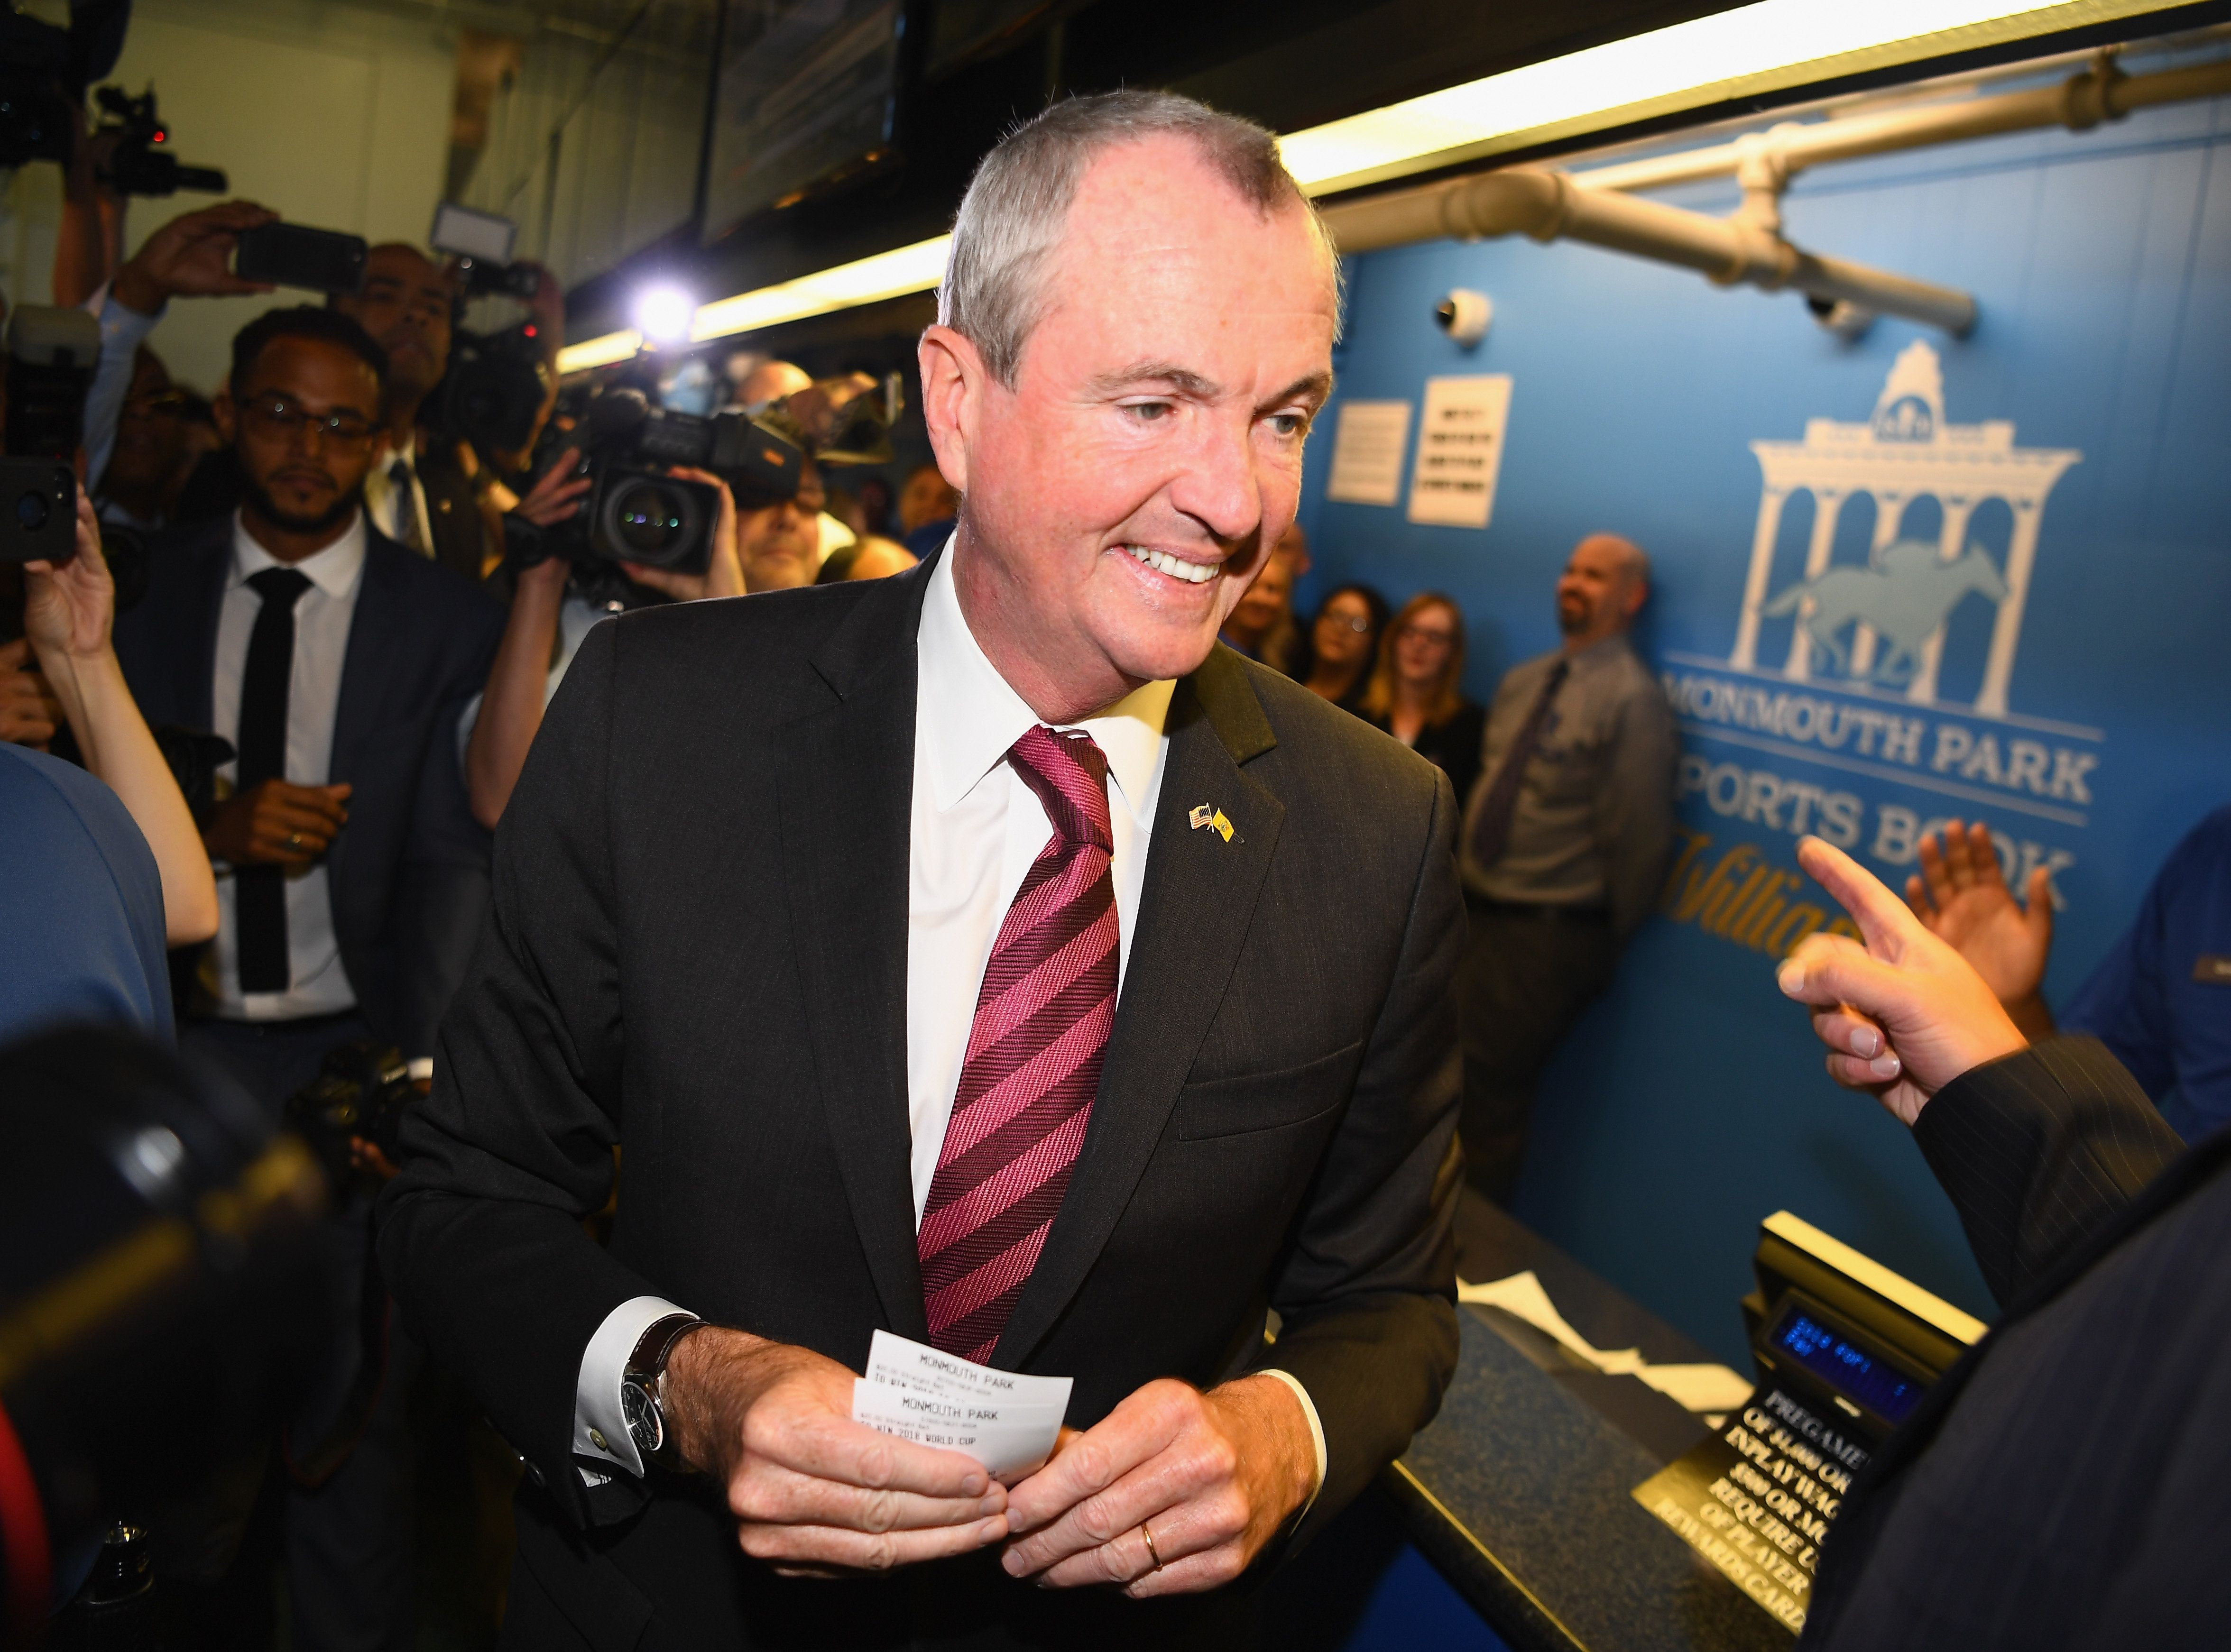 OCEANPORT, NJ - JUNE 14:  Governor of New Jersey Phil Murphy places the first bet at the William Hill Sports Book at Monmouth Park as it opens and welcomes public to place first legal sports bets on June 14, 2018 in Oceanport, New Jersey.  (Photo by Dave Kotinsky/Getty Images for  William Hill Race & Sports Bar )